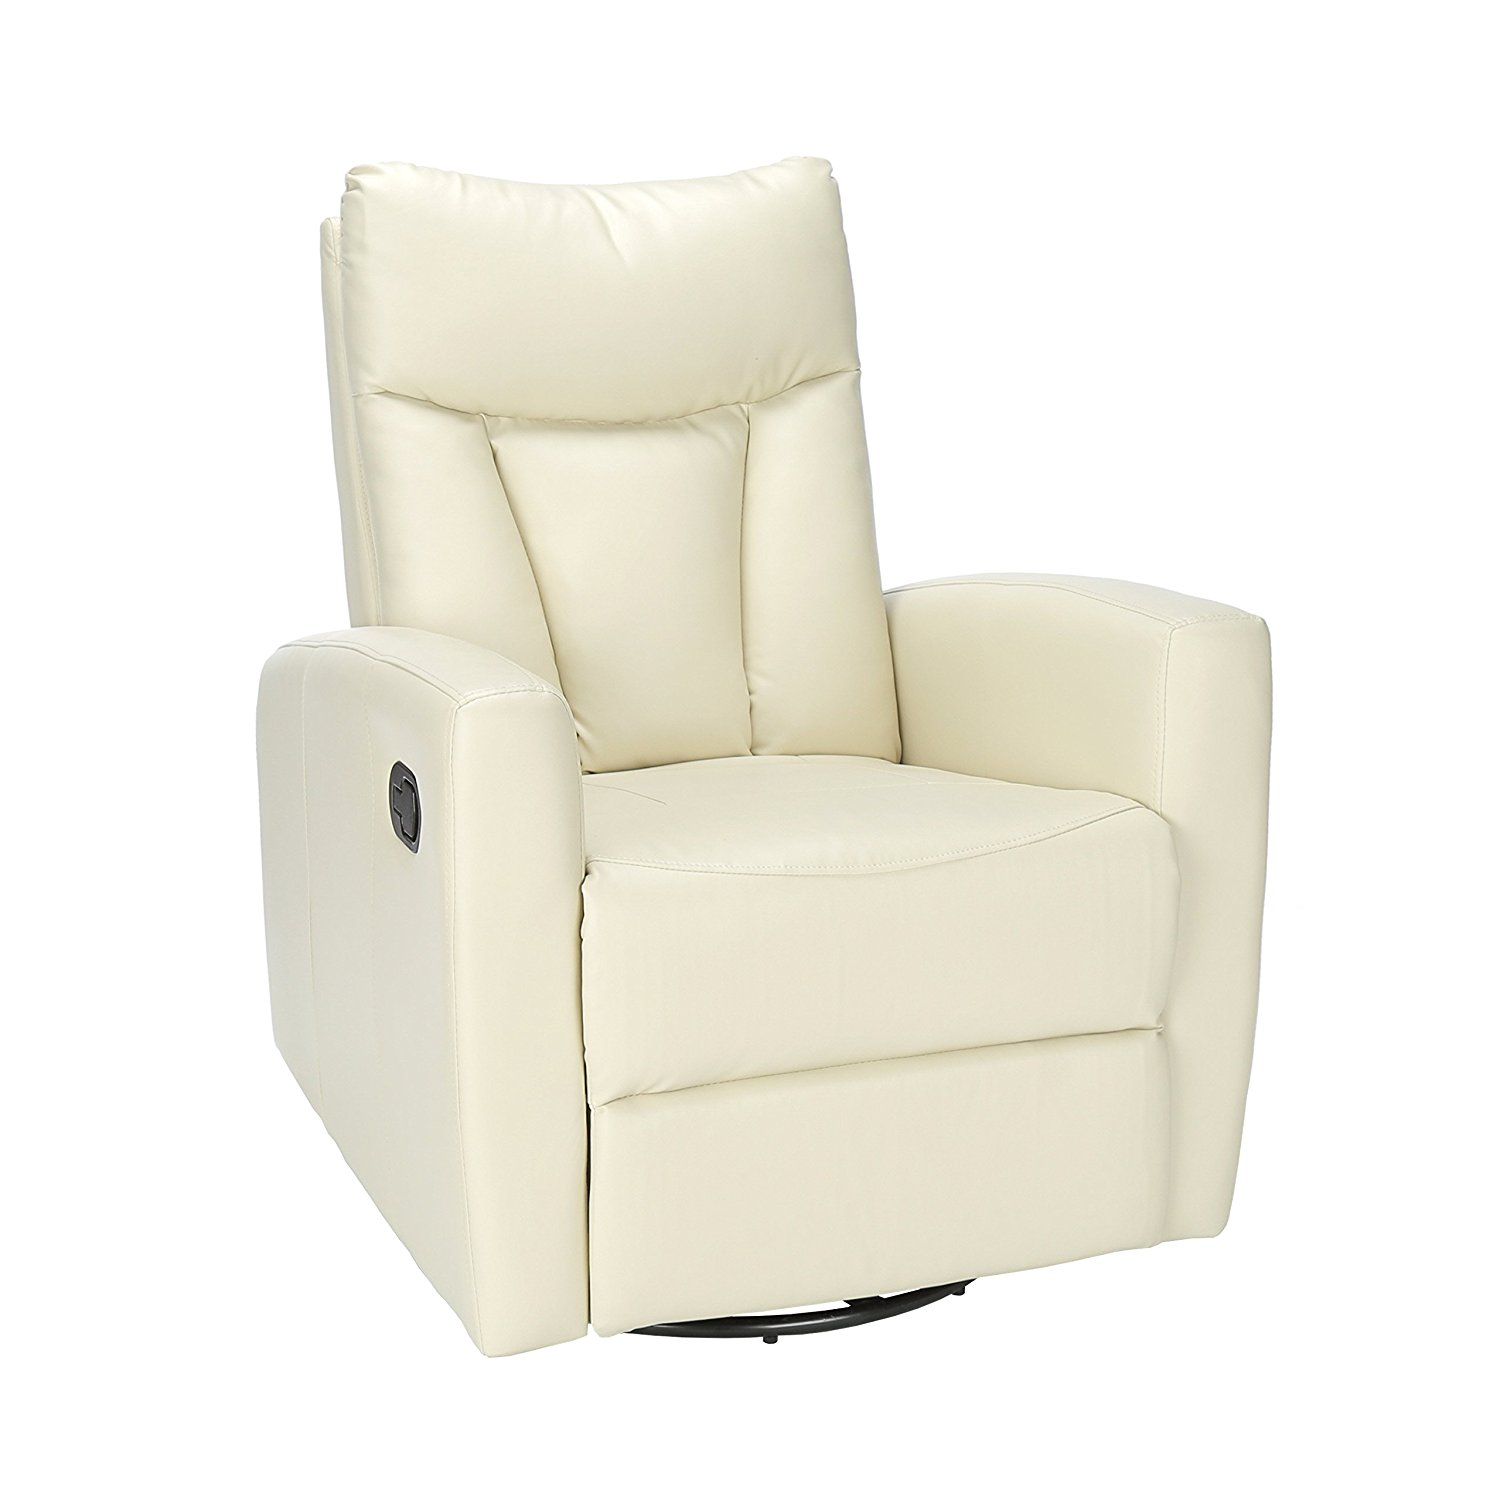 Monarch Specialties Ivory Bonded Leather Swivel Glider Recliner